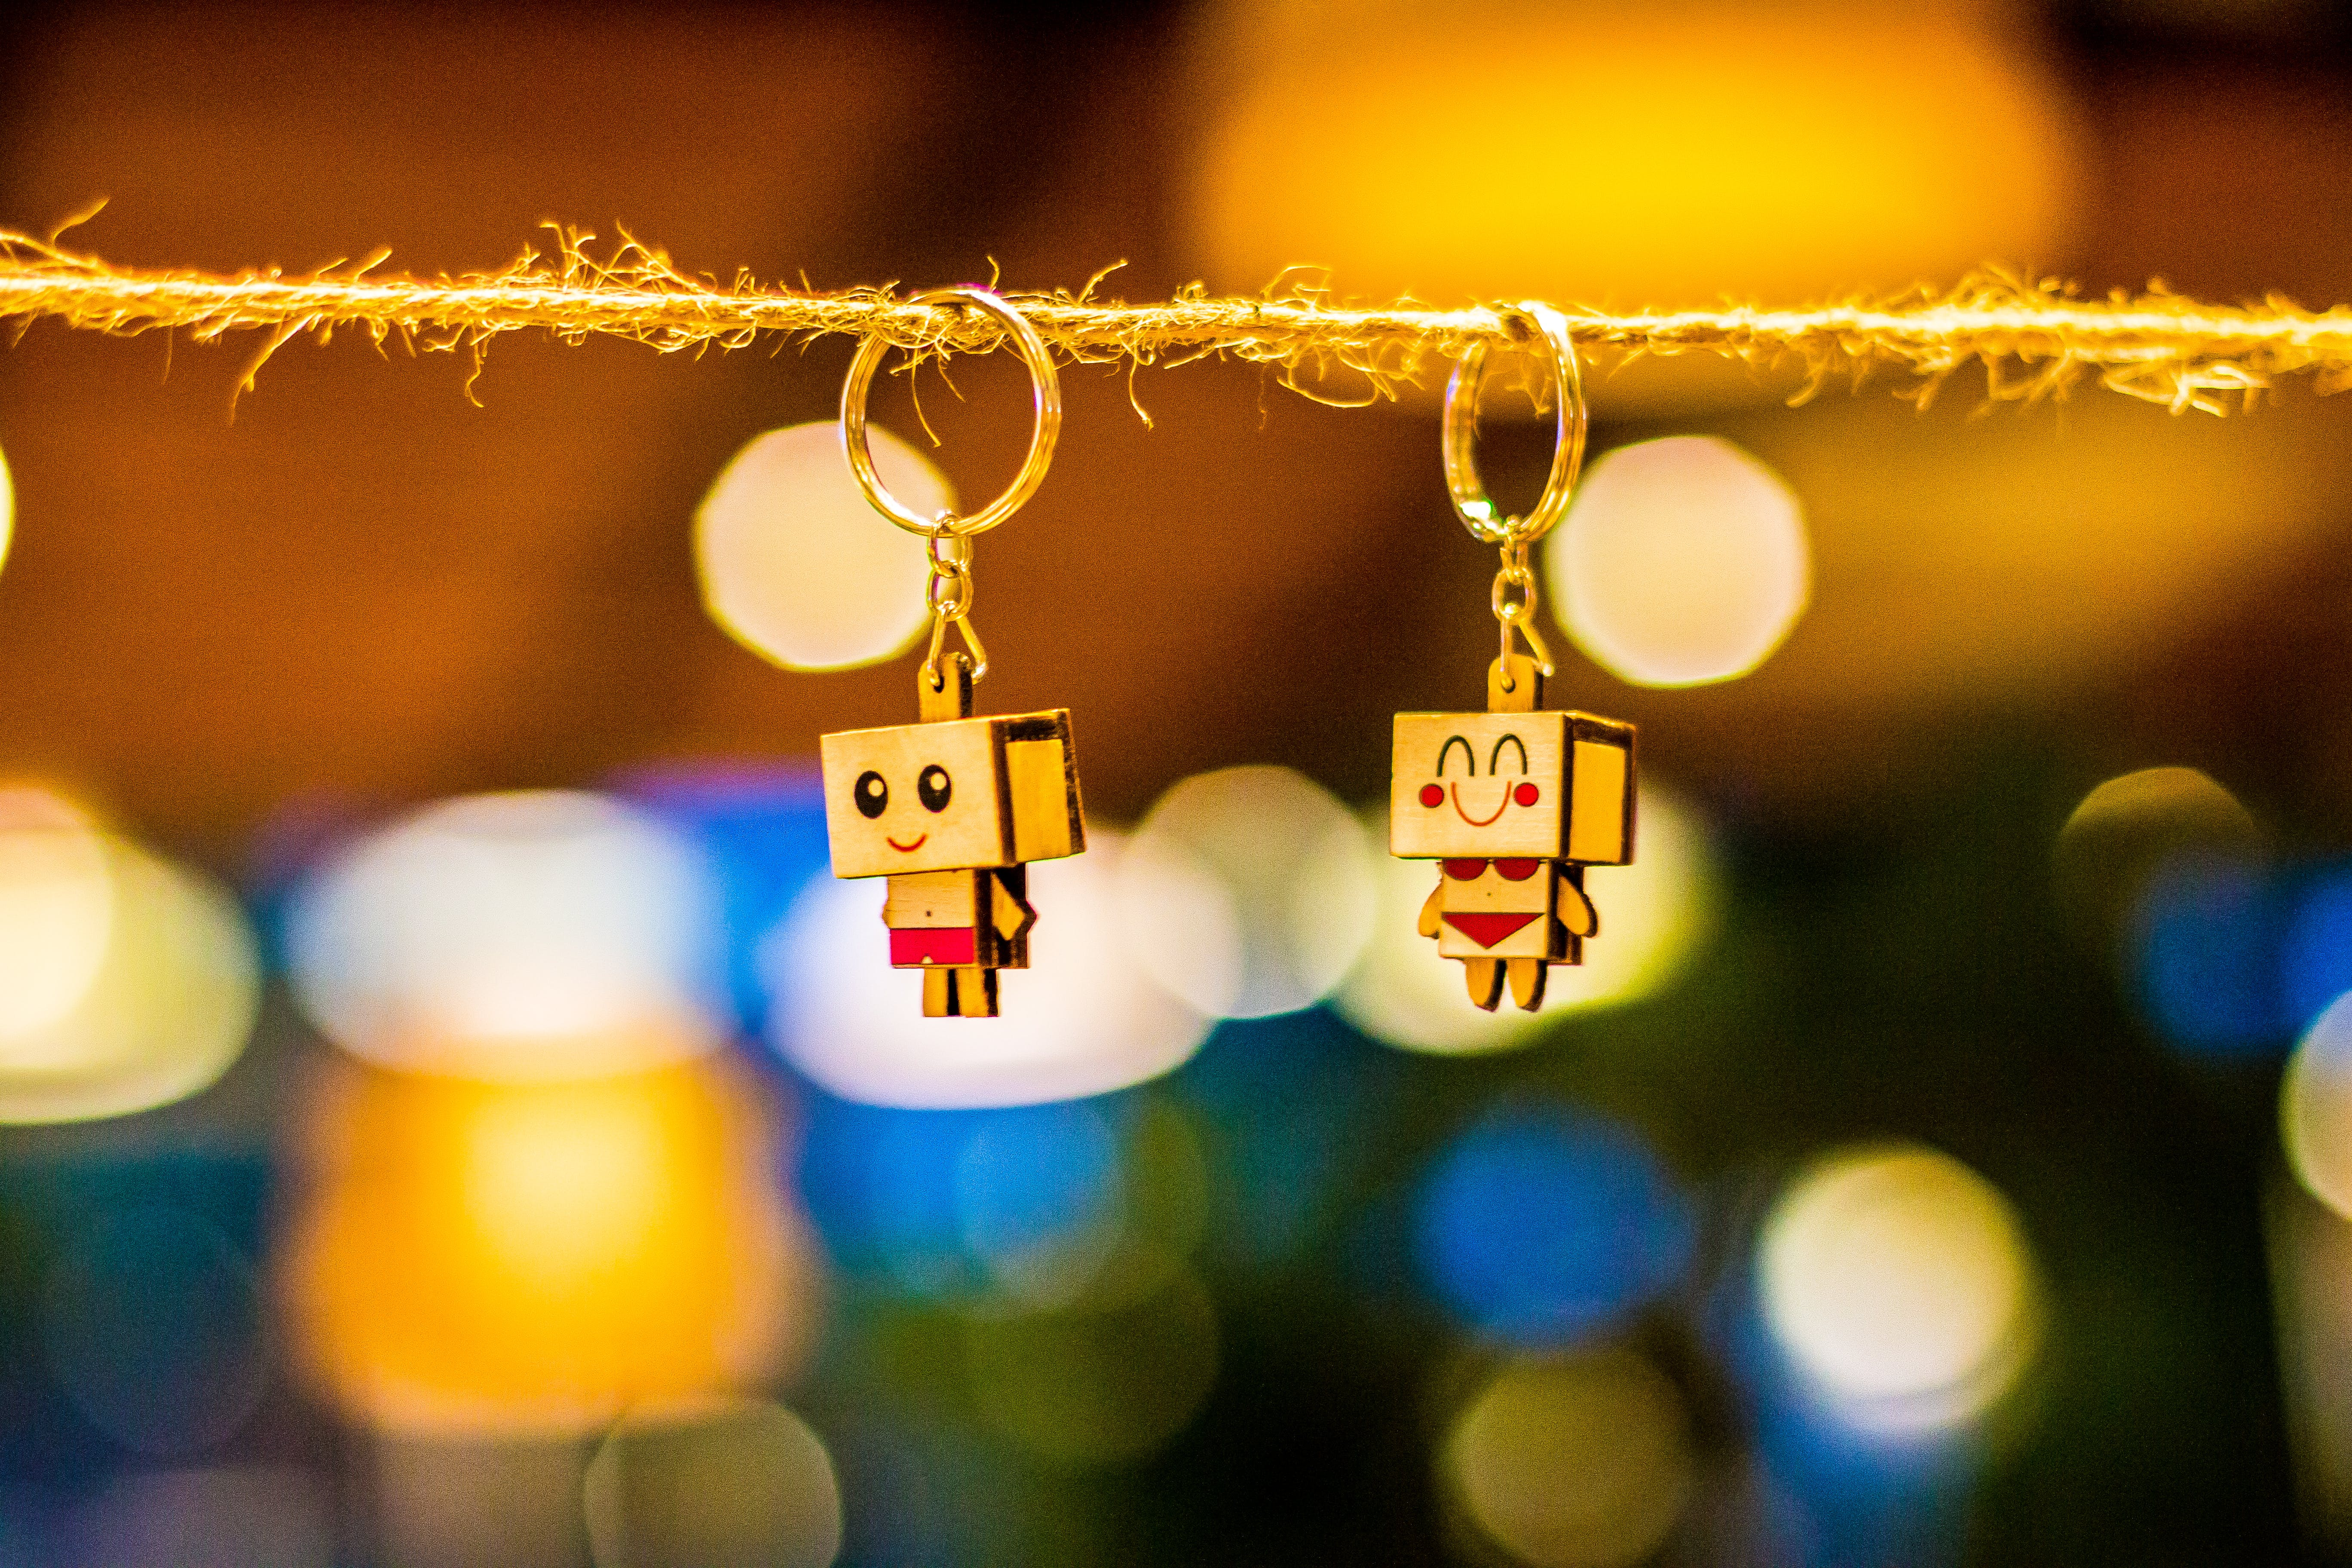 Two Brown Wooden Character Keychains Hanged on Brown Rope